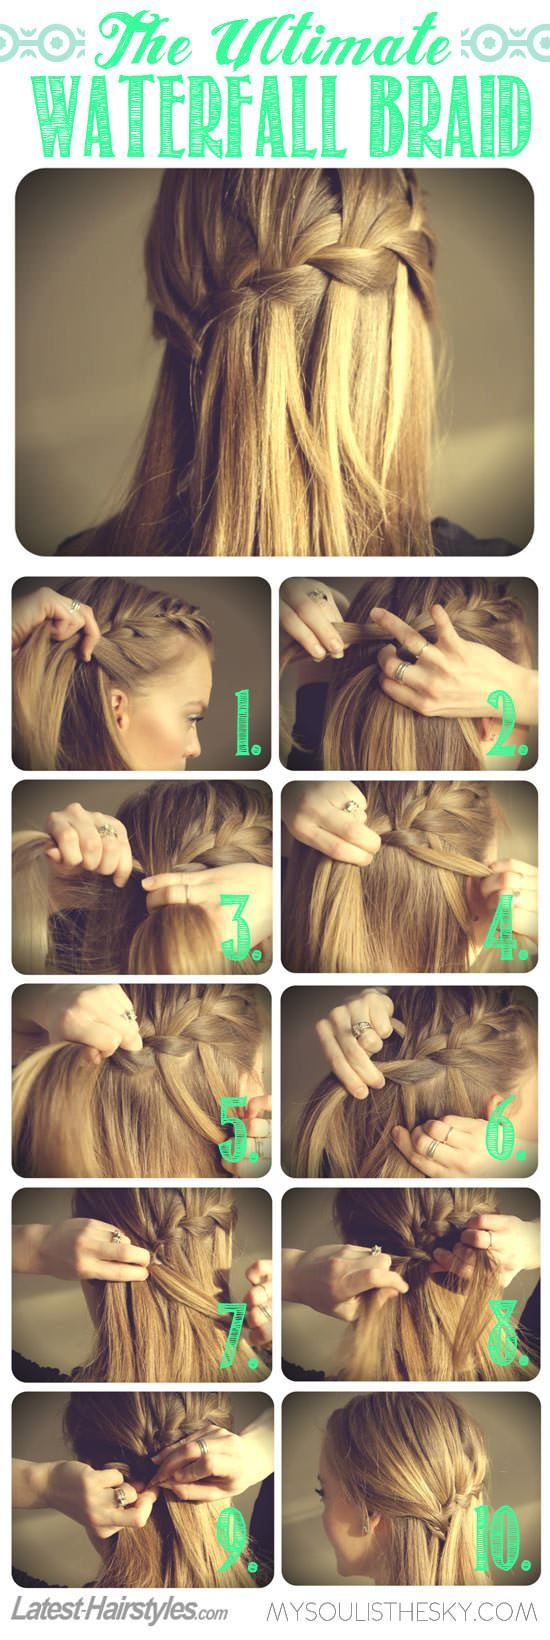 Top 10 half up half down hair tutorials you must have braid i am in love with the waterfall braid but i cant find a solutioingenieria Images